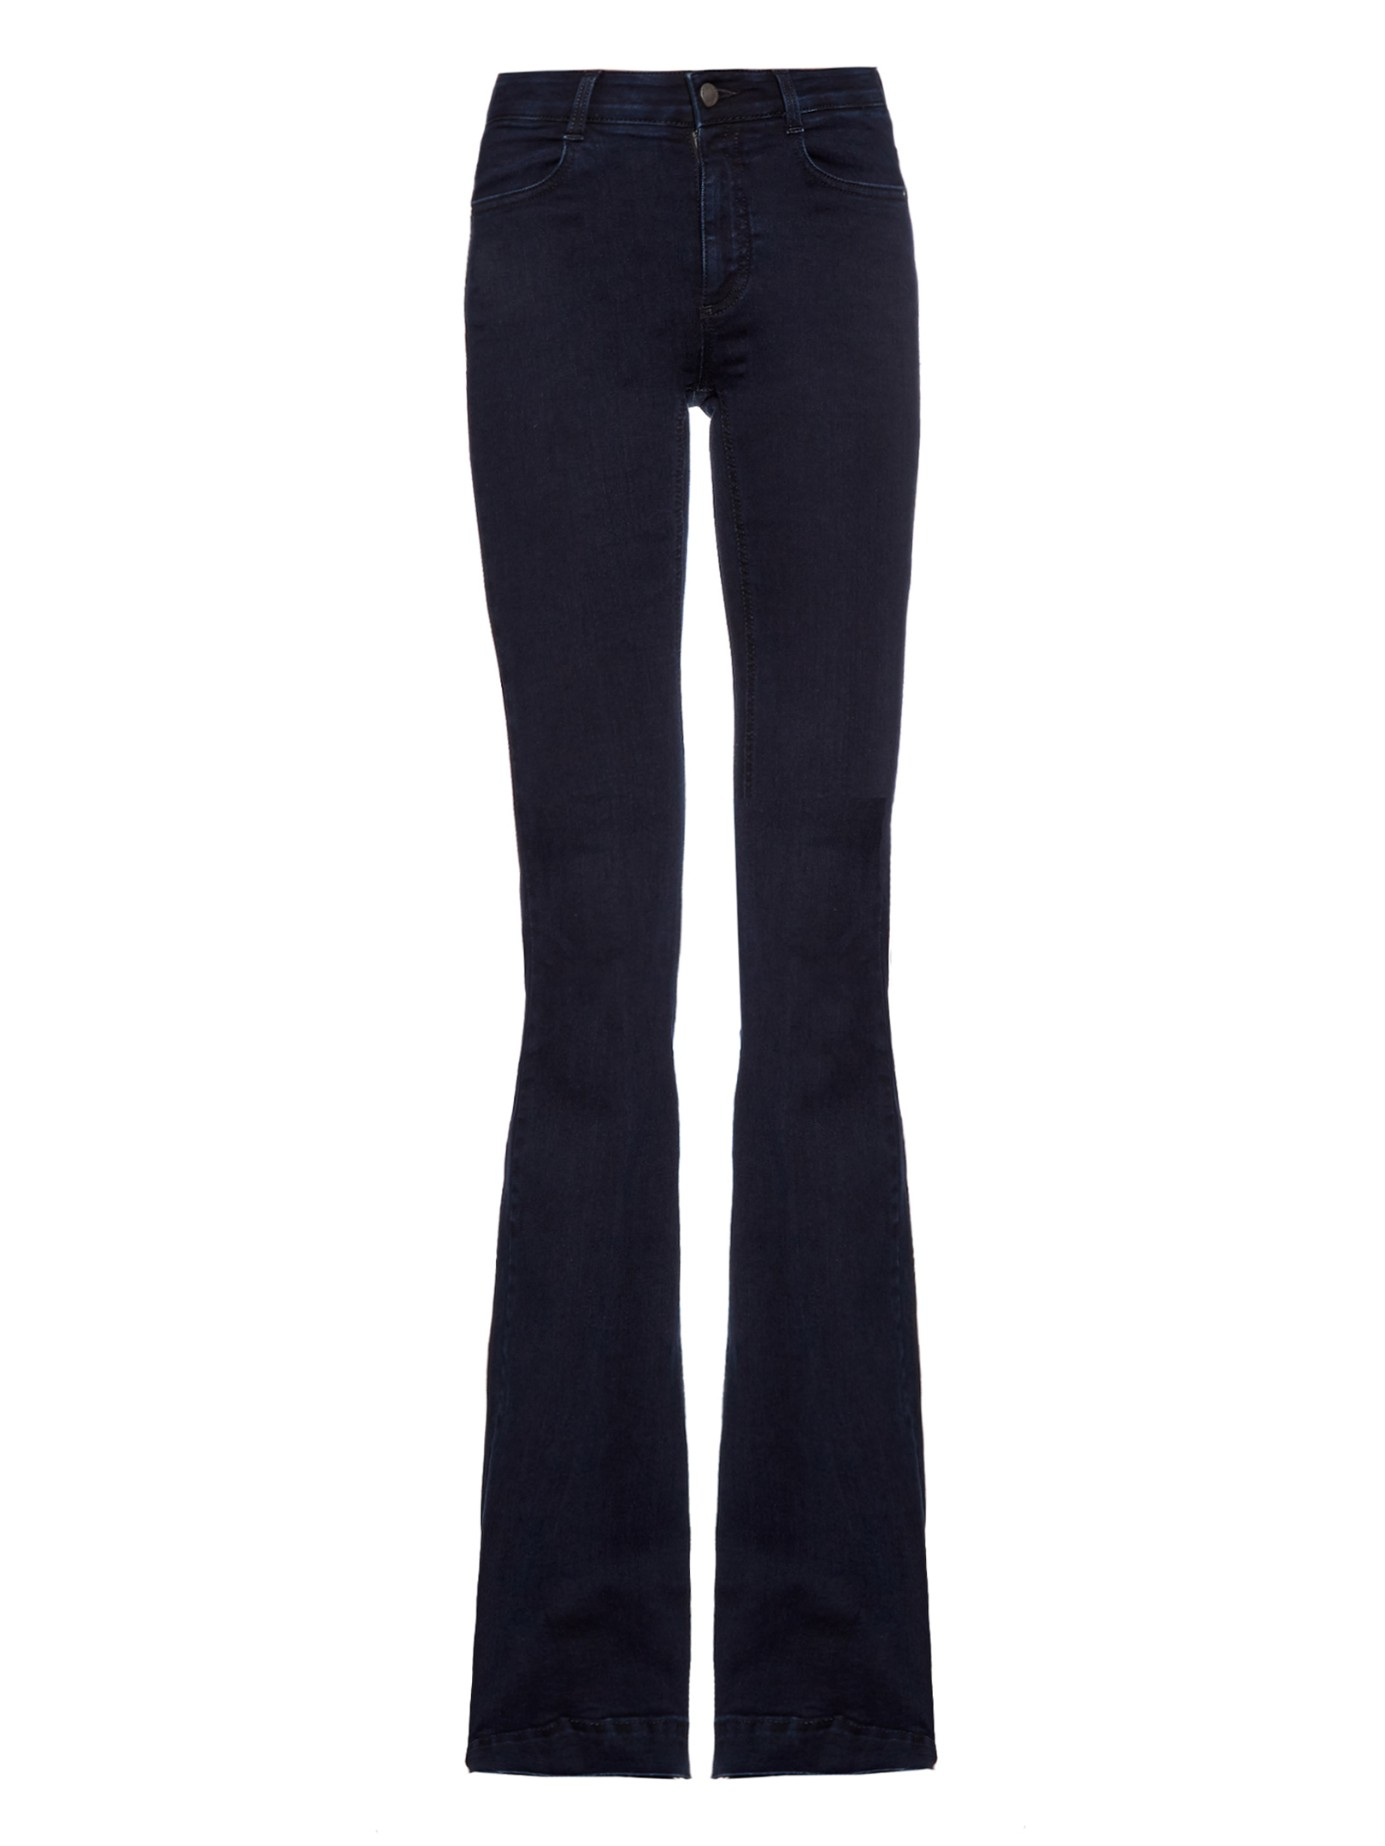 The 70s flare jeans Stella McCartney NHVV1